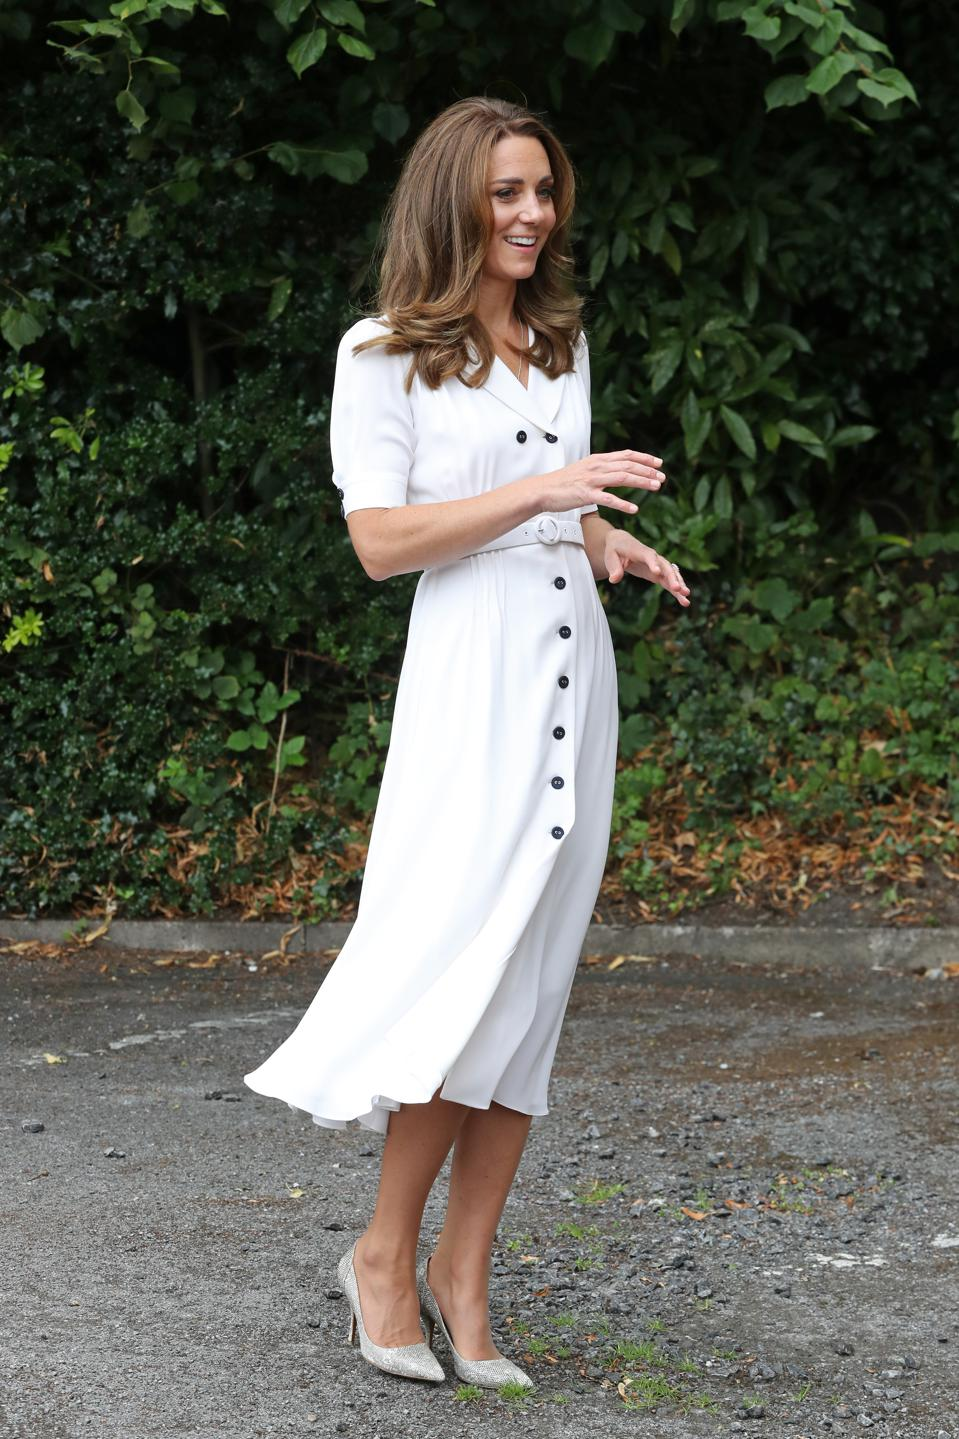 The Duchess Of Cambridge in August 2020